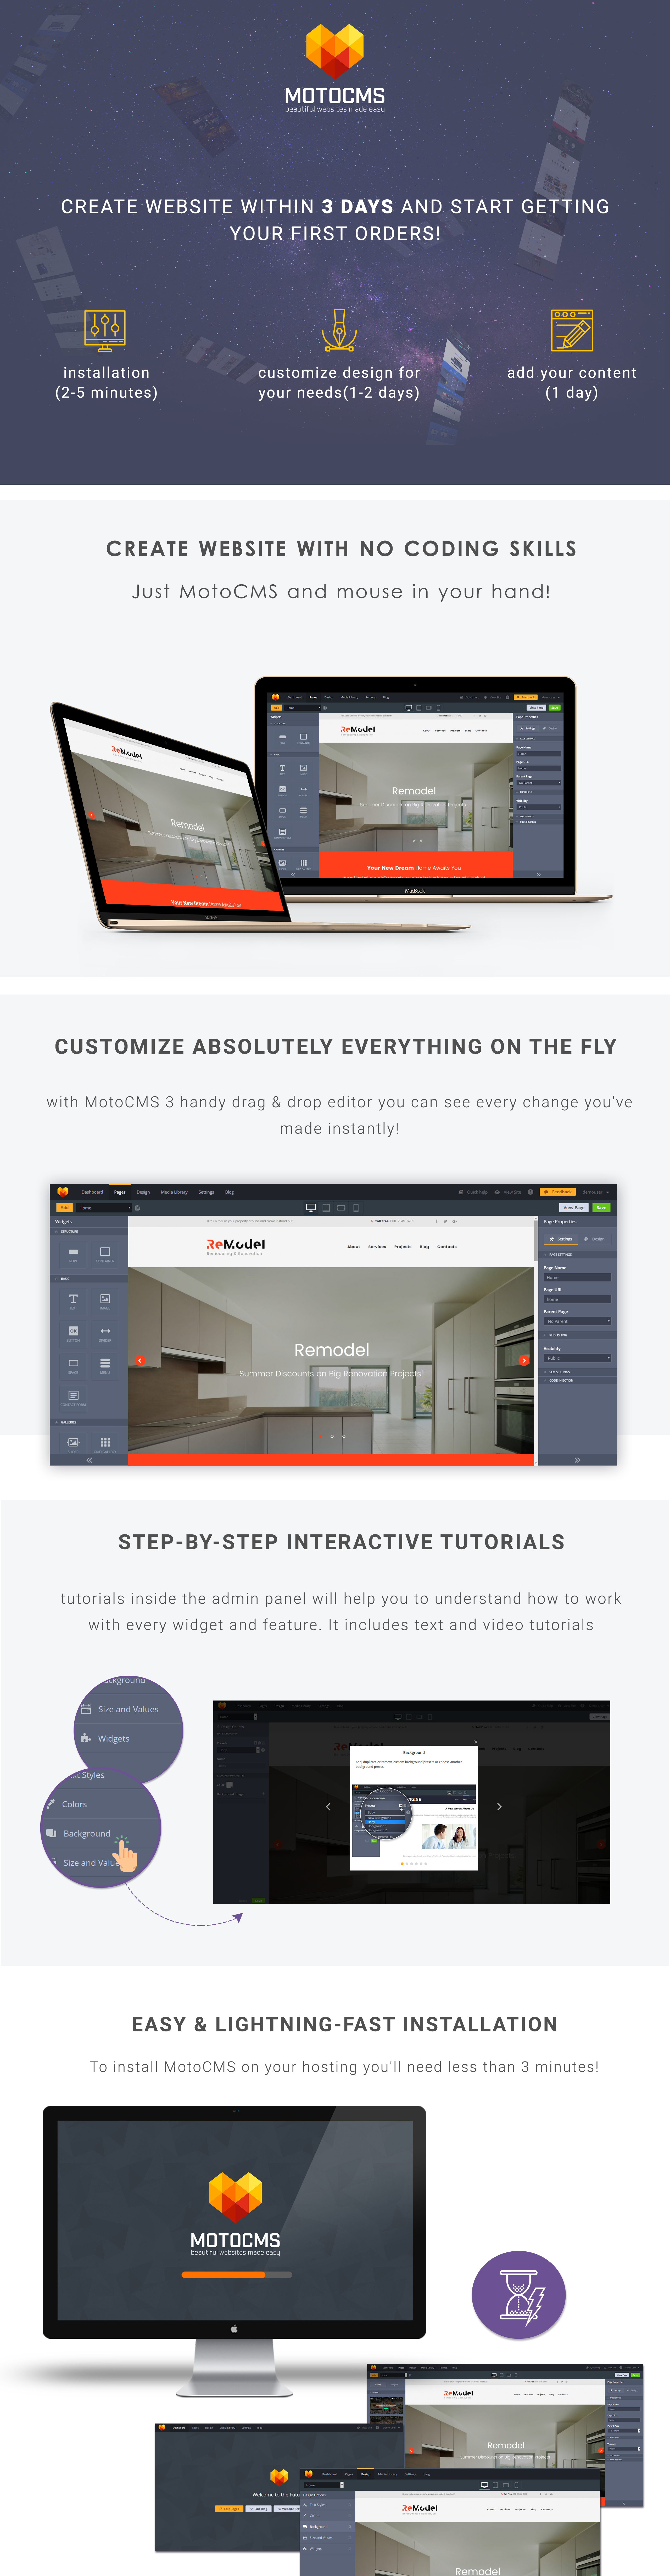 Remodel - Renovation and Interior Design Moto CMS 3 Template